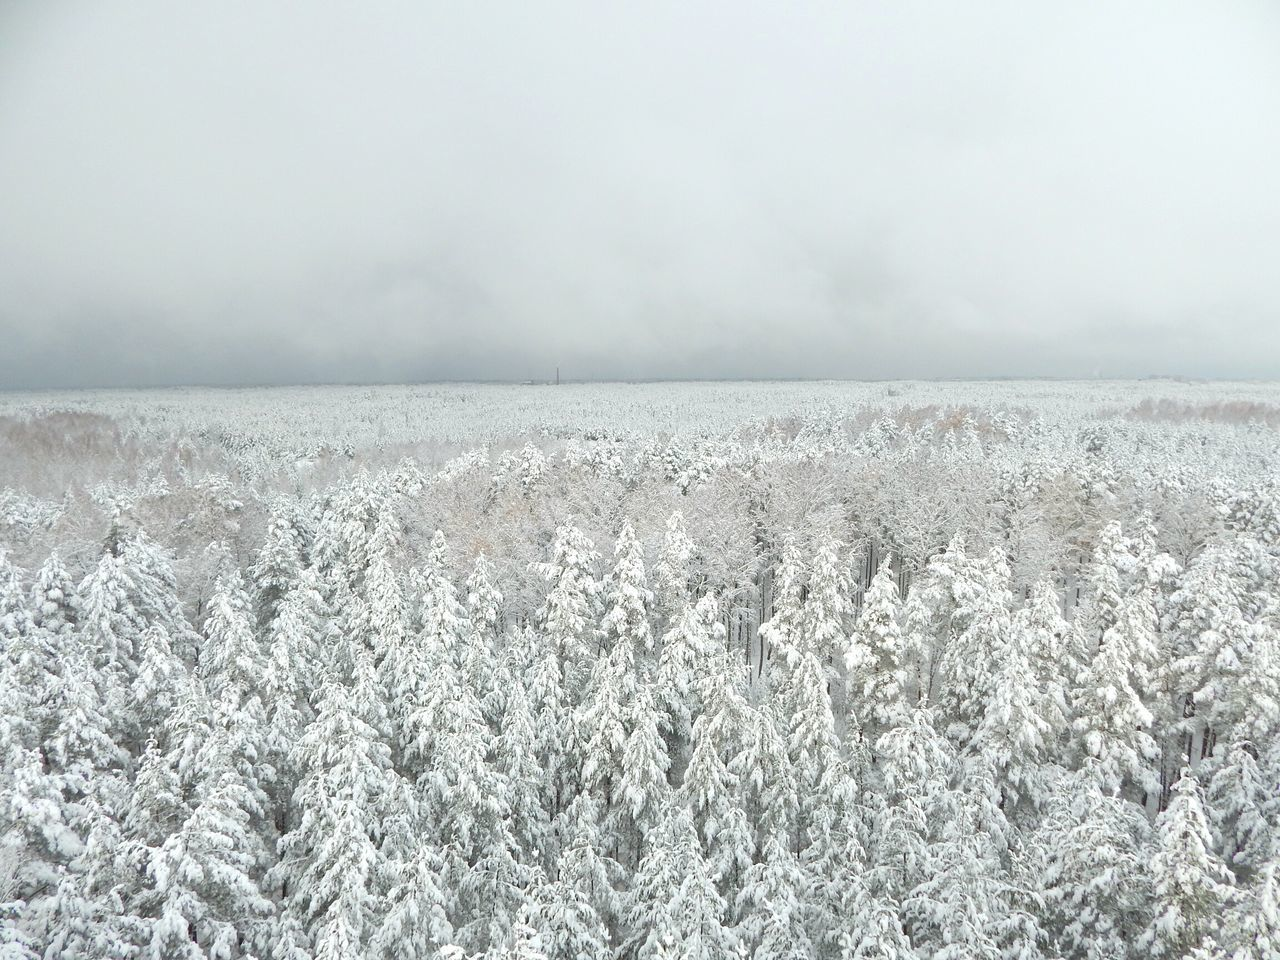 Nature Gray Non-urban Scene Textured  Sparse Plant Outdoors Freshness No People Day Close-up Sky Frosted Glass View From Above Forest Point Of View Riga Latvia View PointWinter Snow Cloud - Sky View Tower Tree